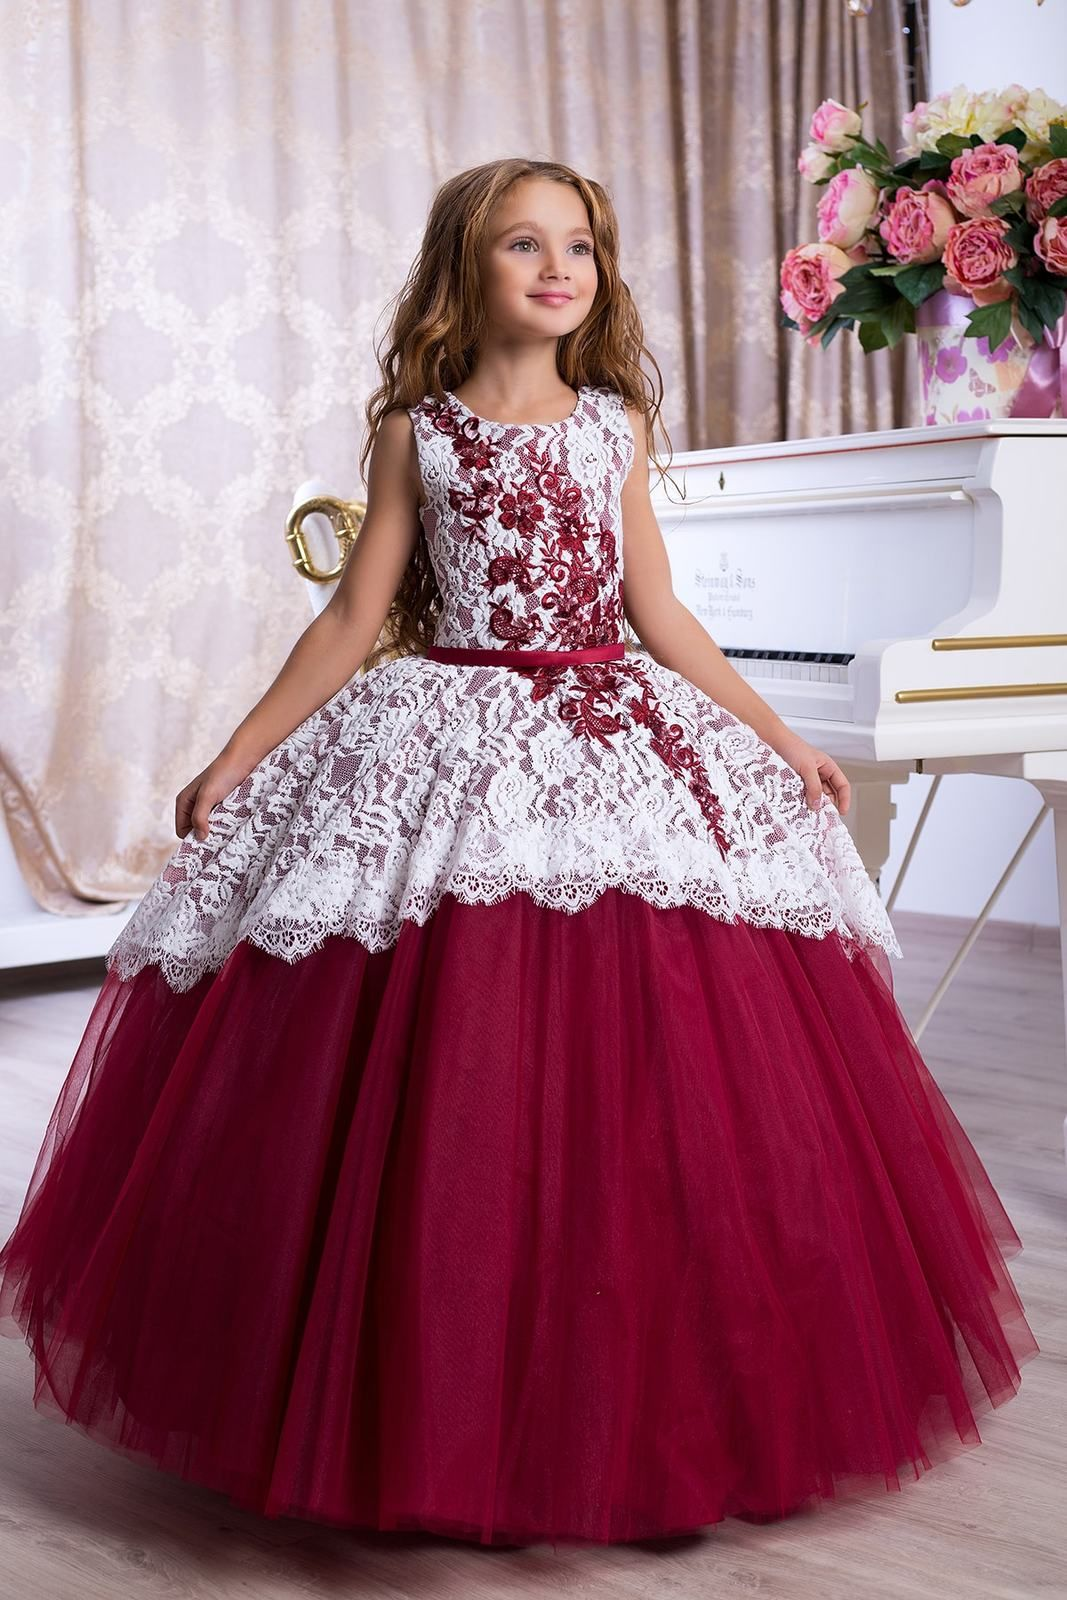 Girls Kids Lace Chiffon Ball Gown Wedding Bridesmaid Party Prom Birthday Dress